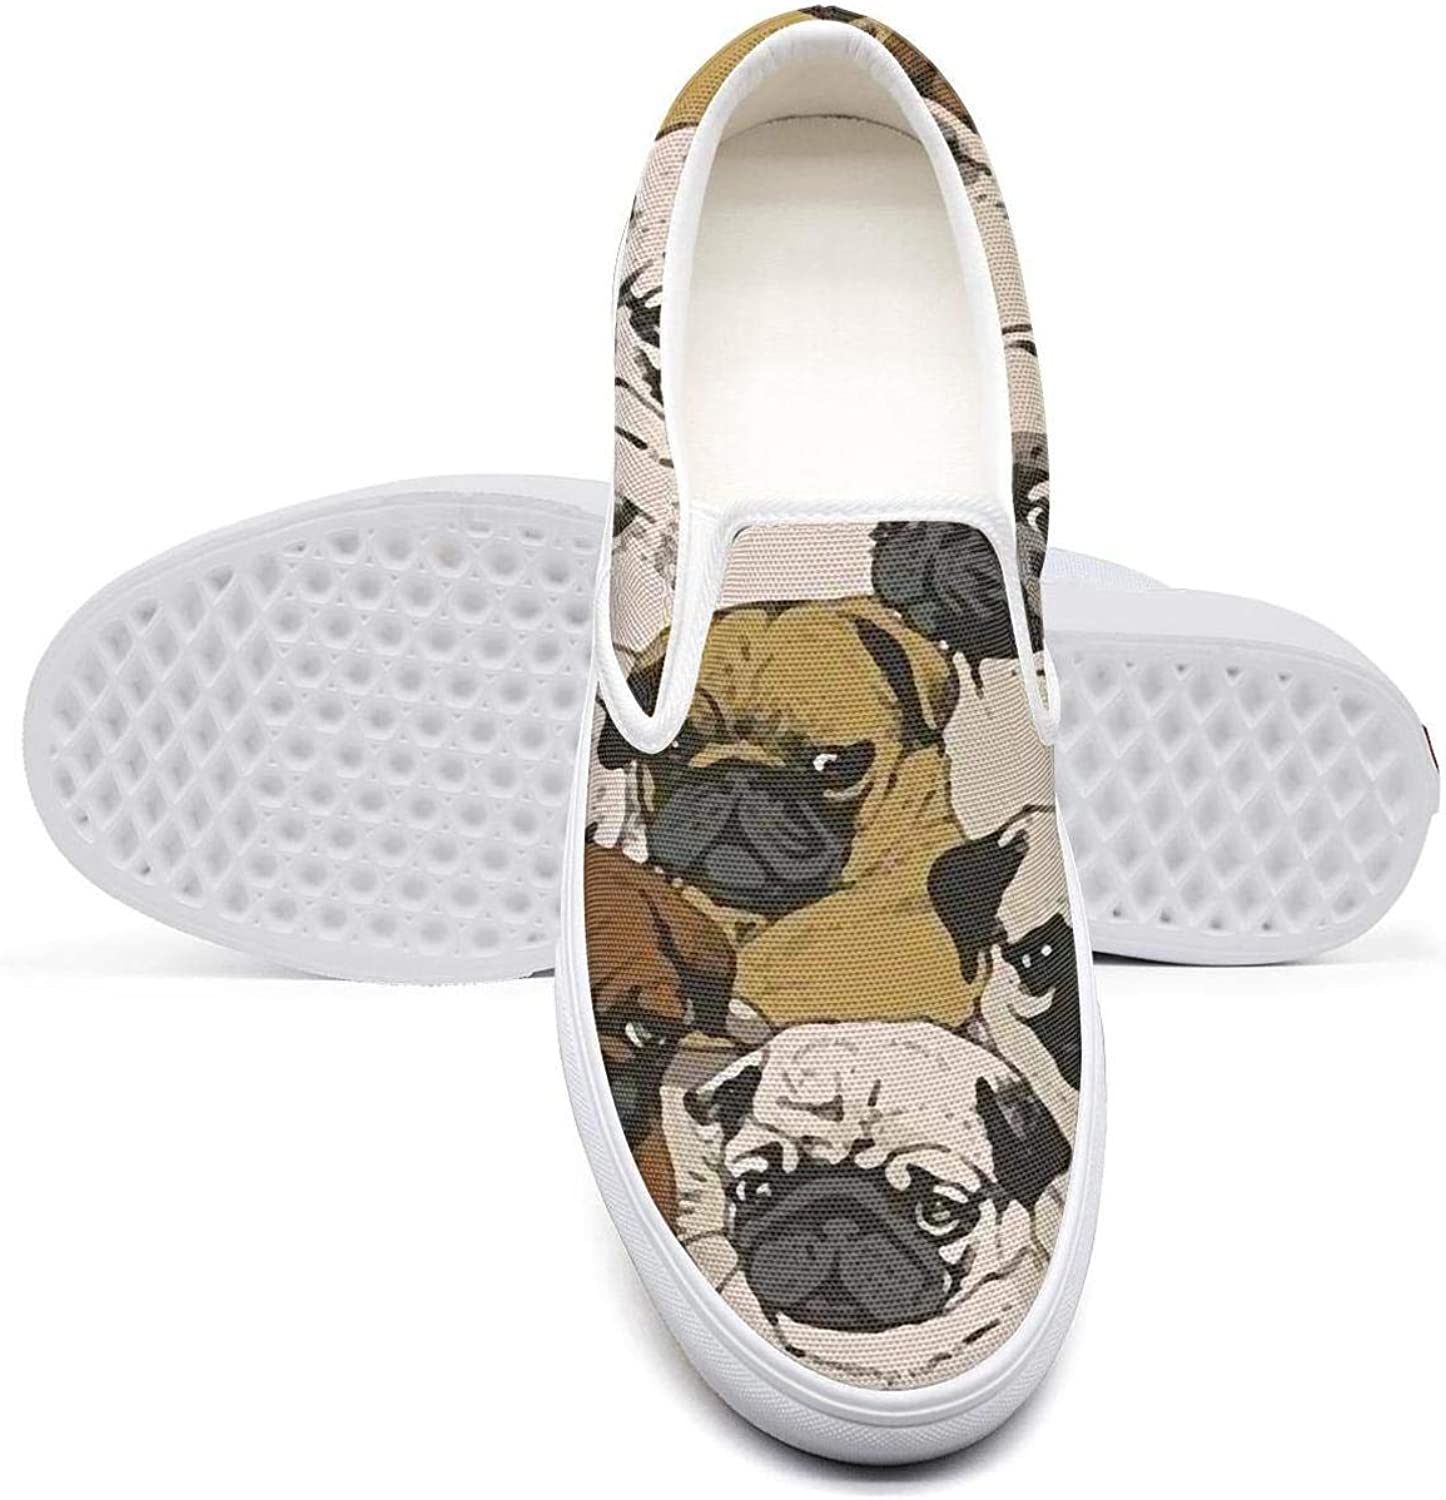 Women's Athleisure Fashion shoes Happy Pug Fest Collection Comfortable Loafers Slip on Christmas Sneakers